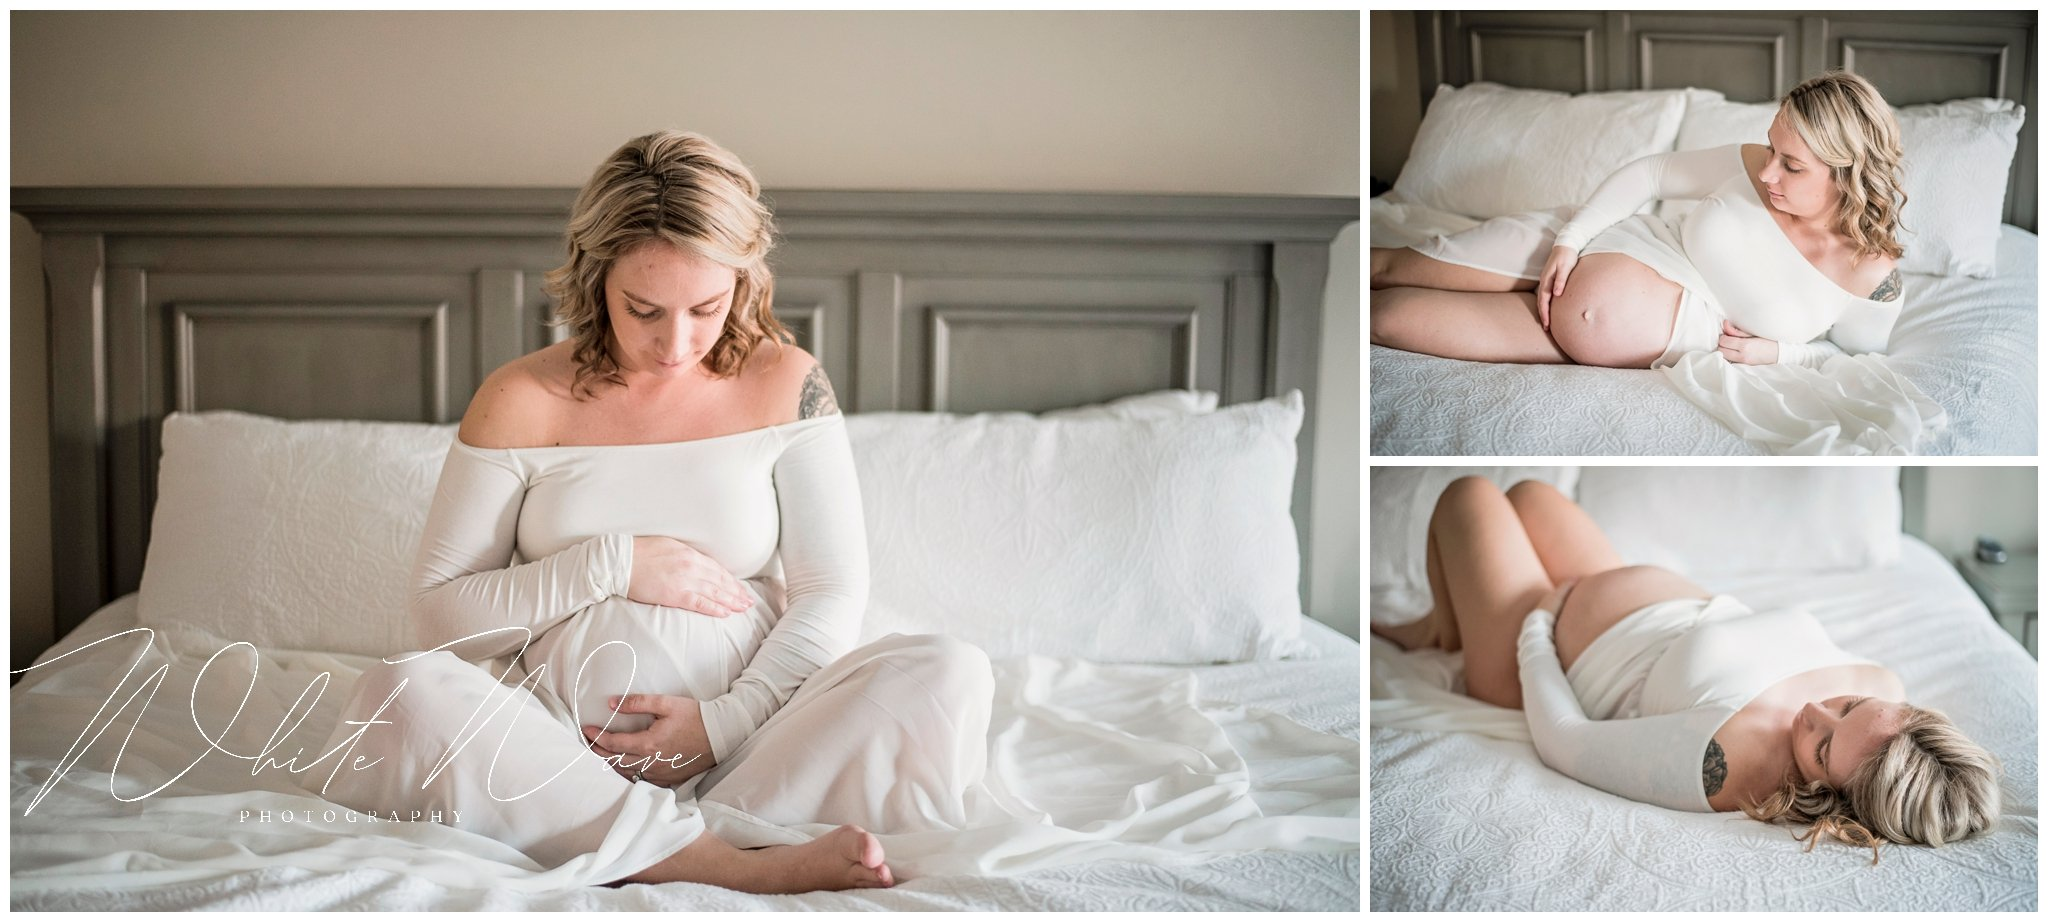 maternity photography near Exeter, NH